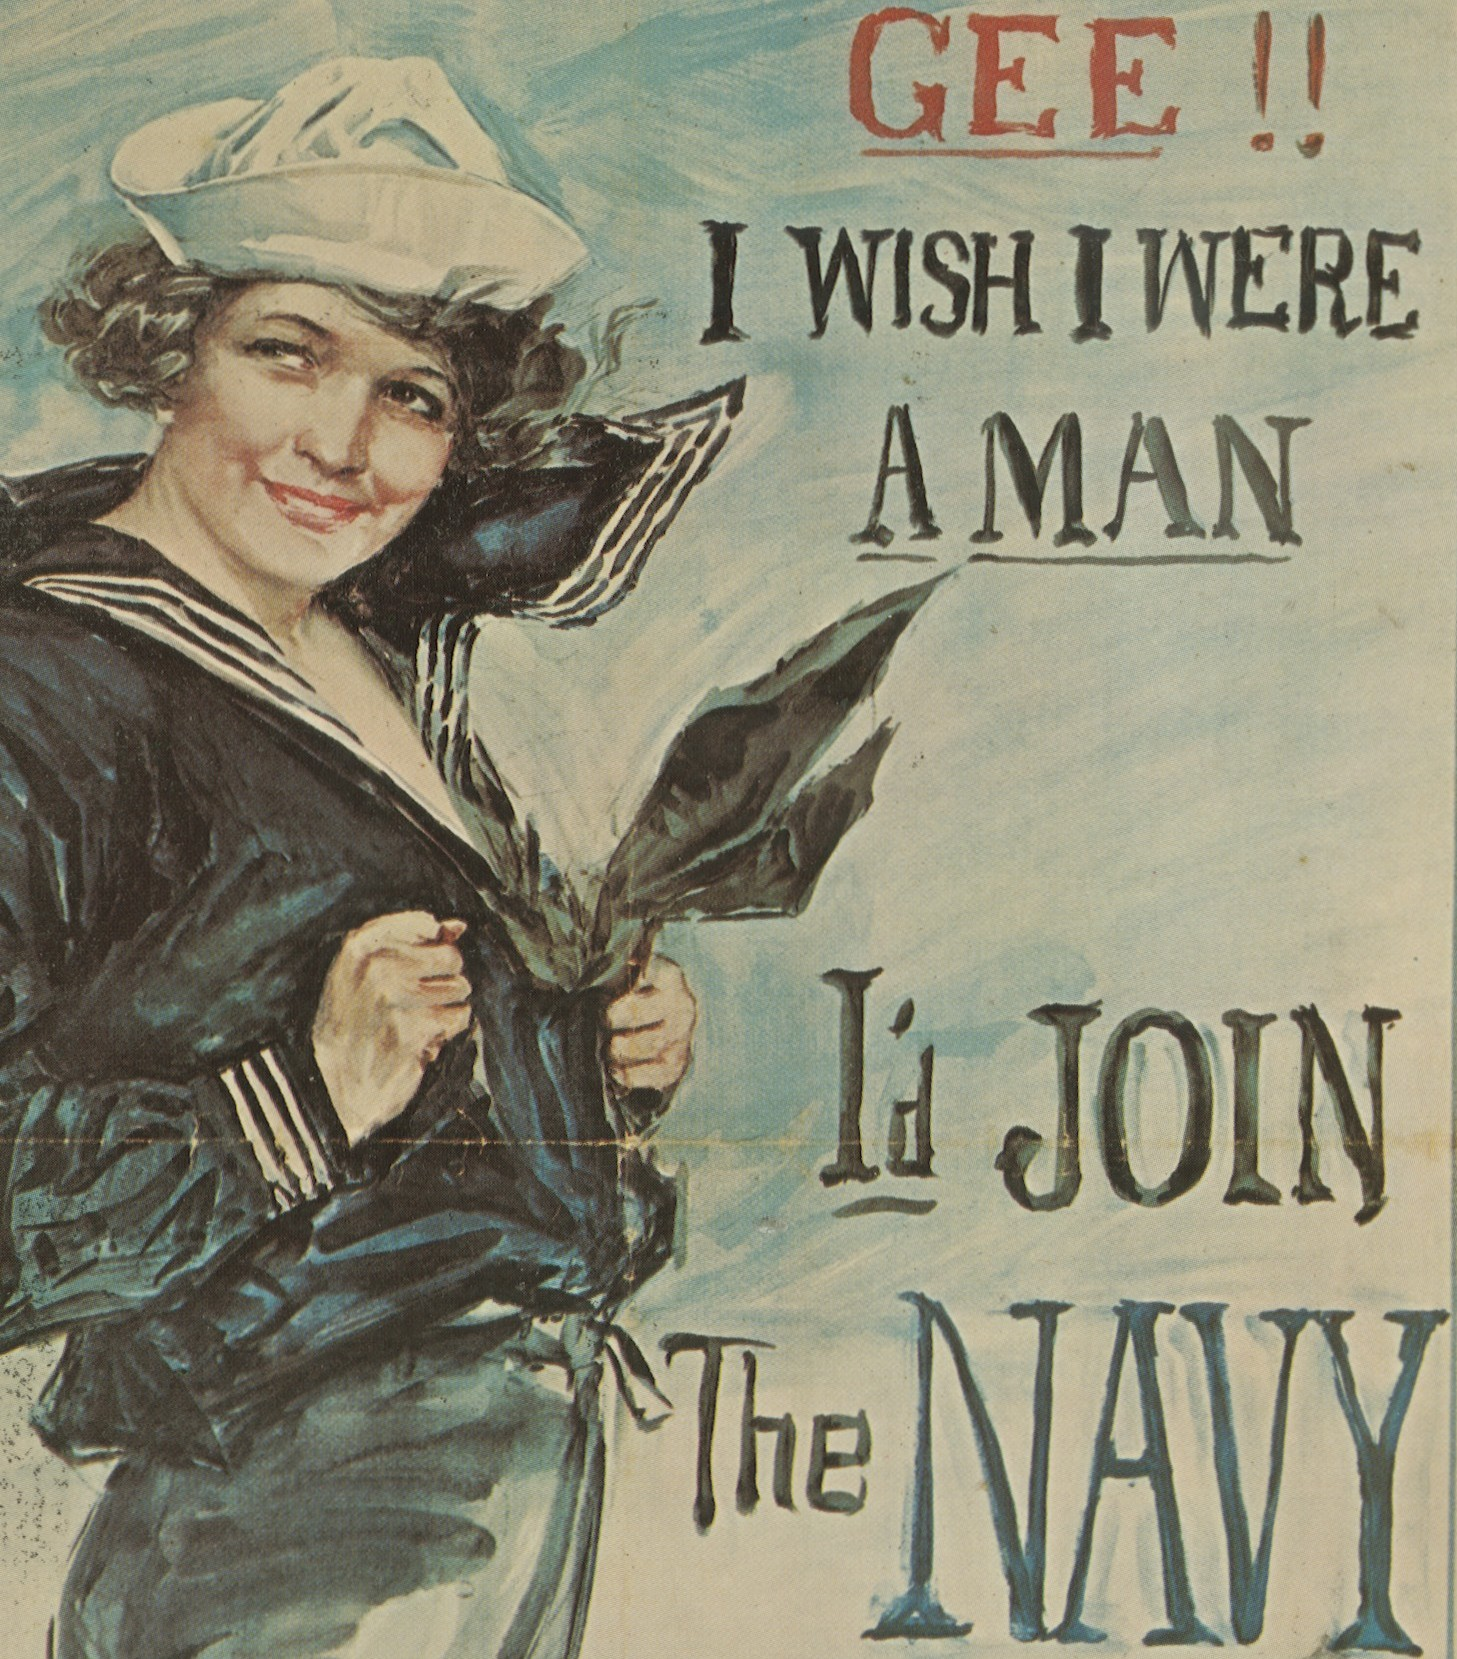 Christy Recruitment Poster, WWI